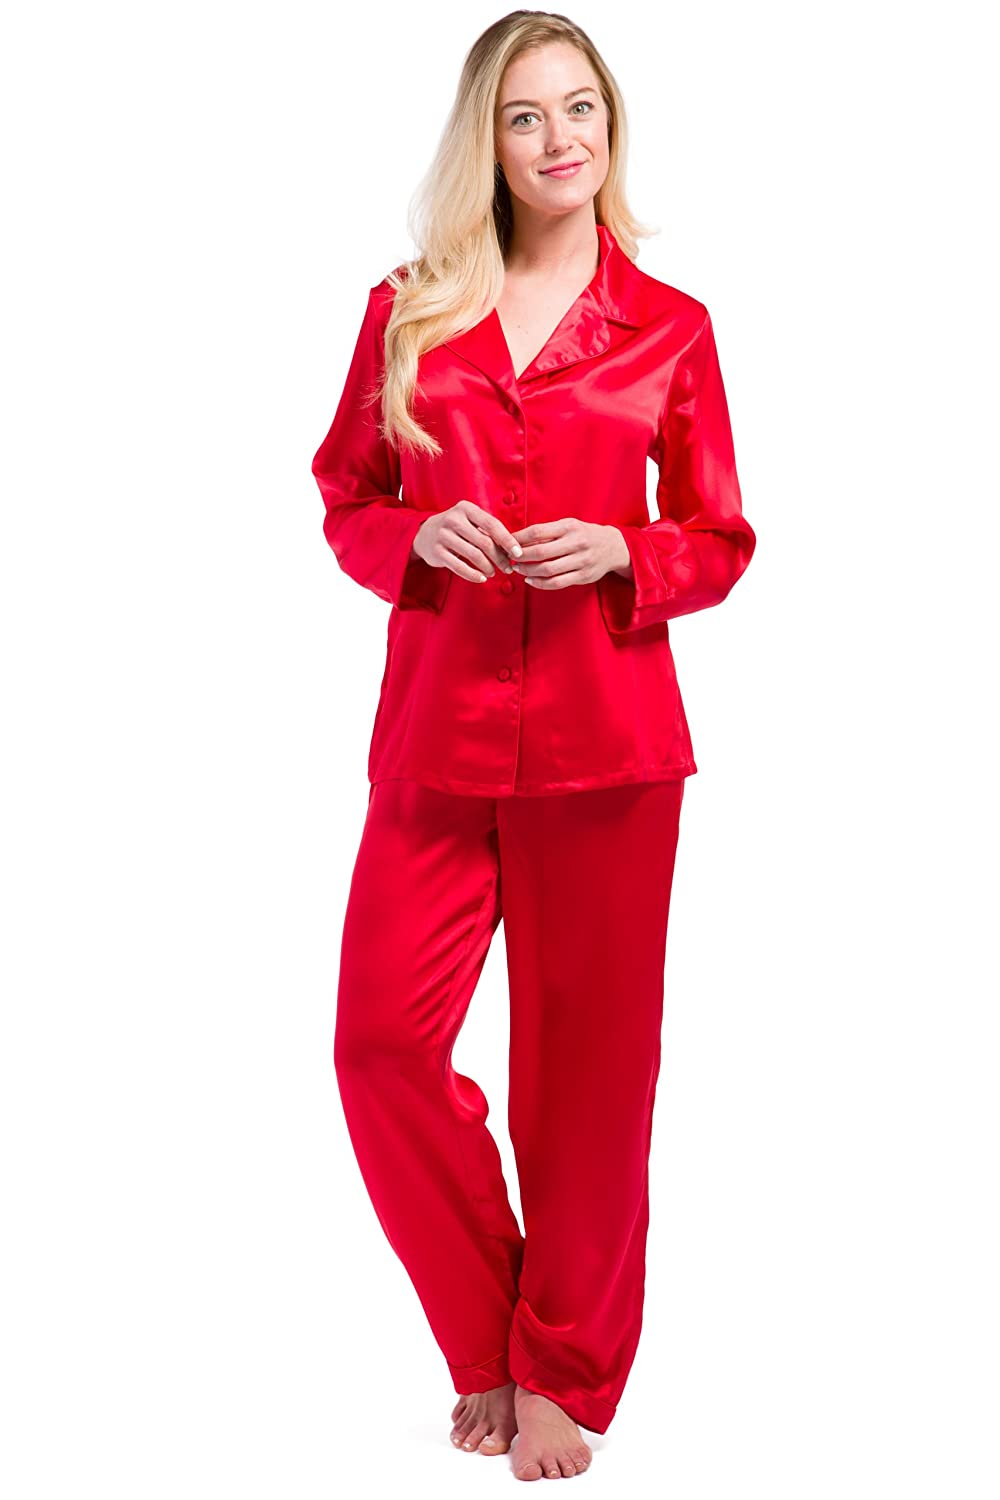 bb8611172 Two-piece silk pajama set featuring button-up top with notched collar and  full-length matching pant with elastic drawstring waist. Comes in custom gift  box ...